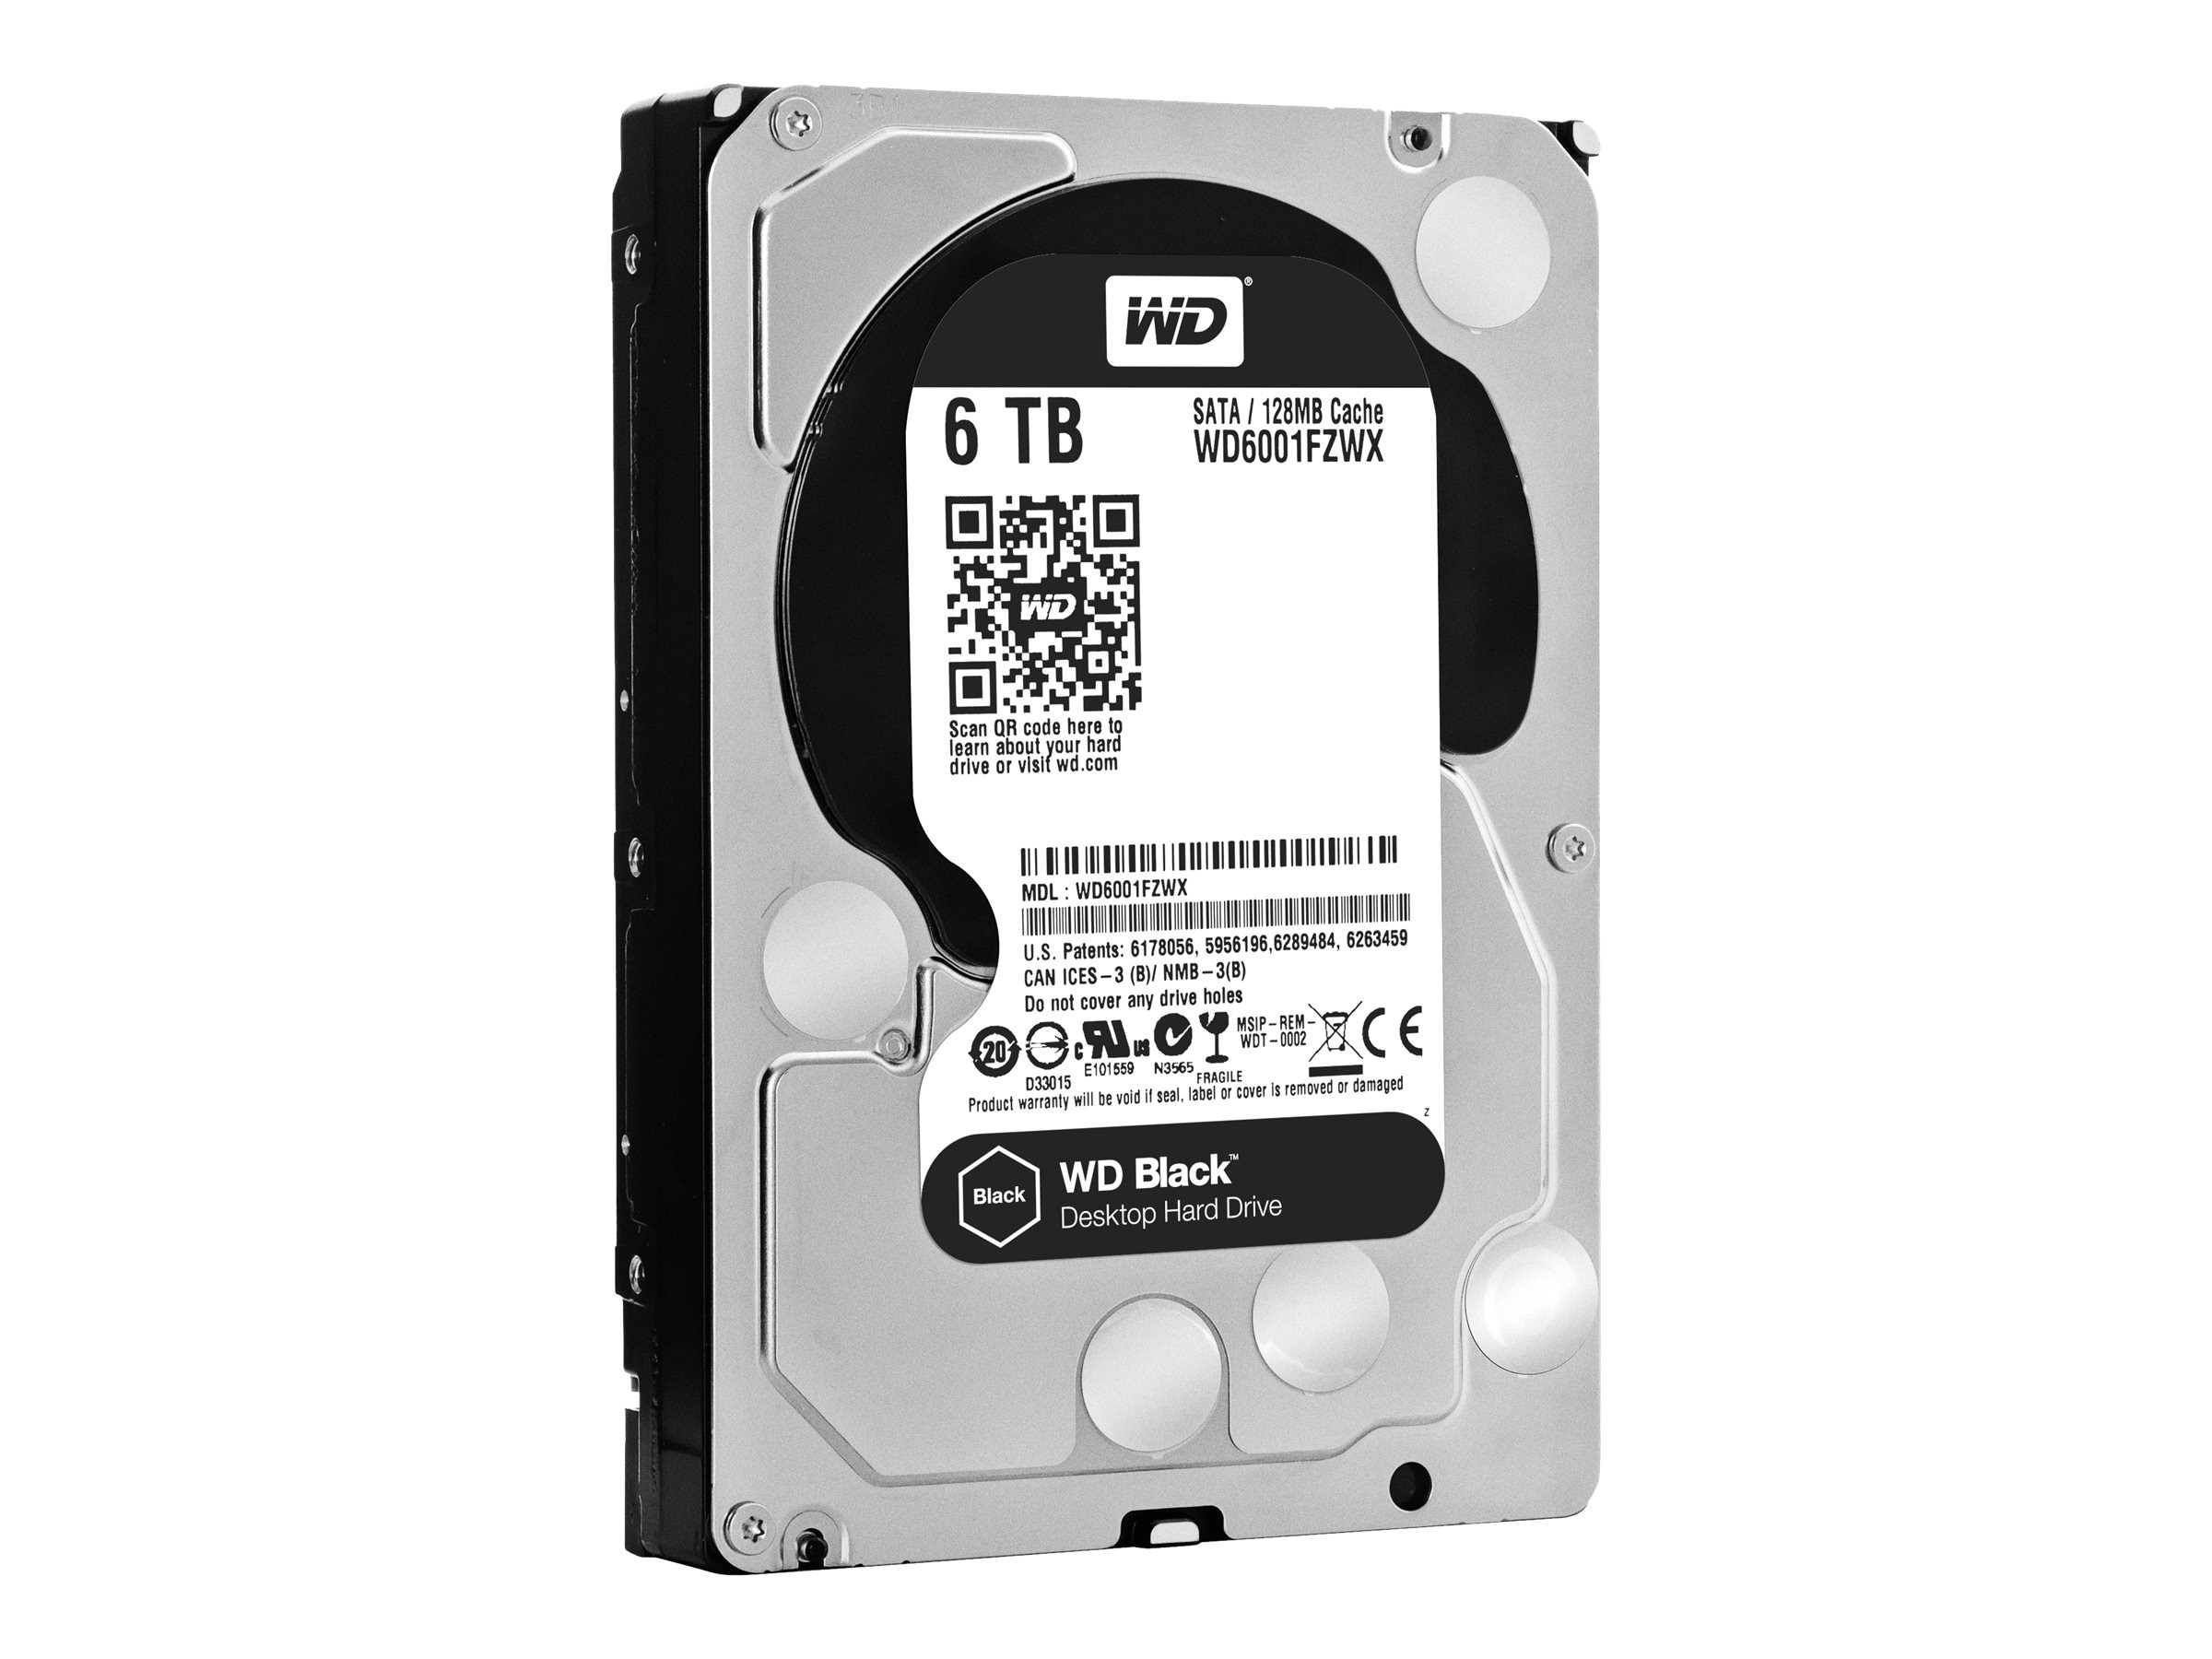 WD WD6001FZWX Image 7